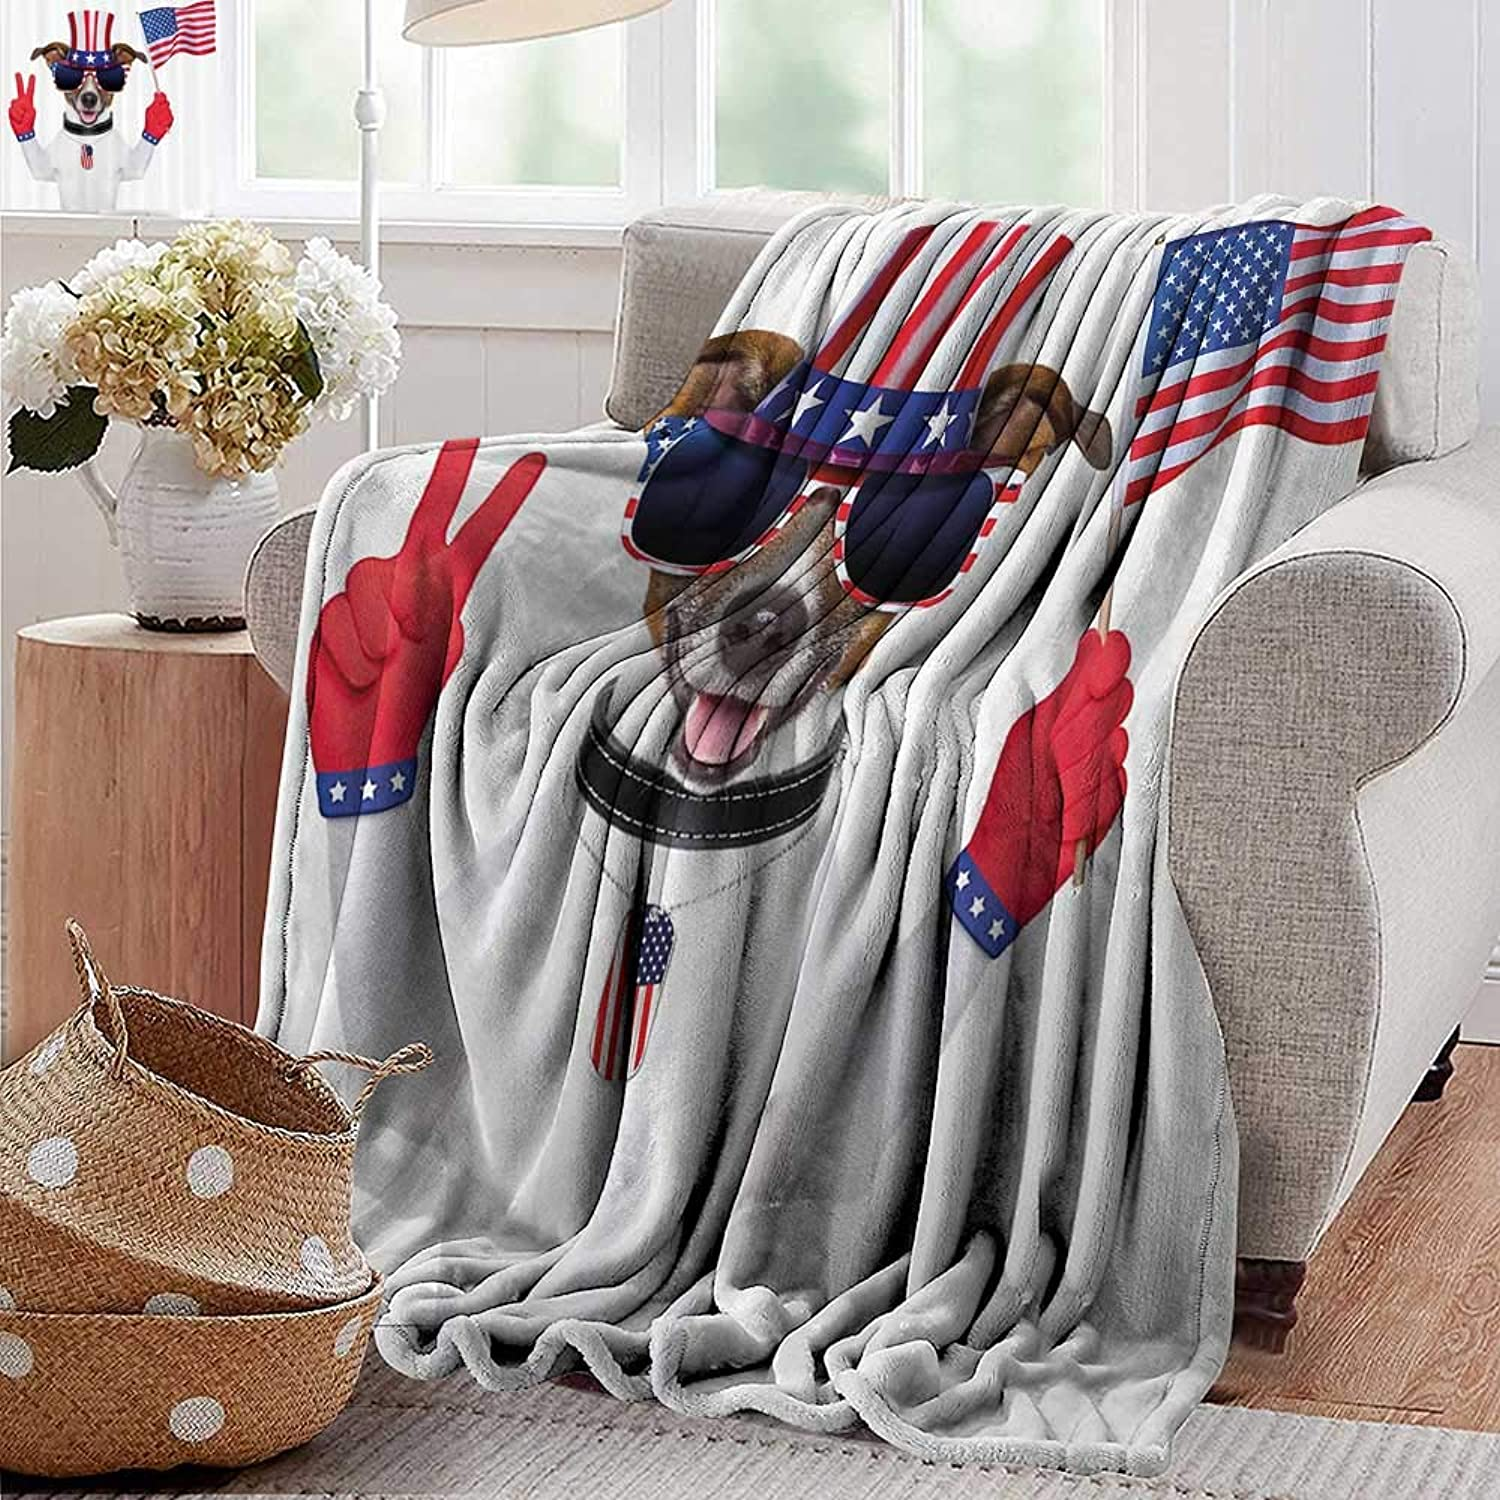 Weighted Blanket for Kids,4th of July,Funny Pet Dog with an Uncle Sam Hat Holding a Peace Sign and an American Flag,Multicolor,Weighted Blanket for Adults Kids, Better Deeper Sleep 35 x60